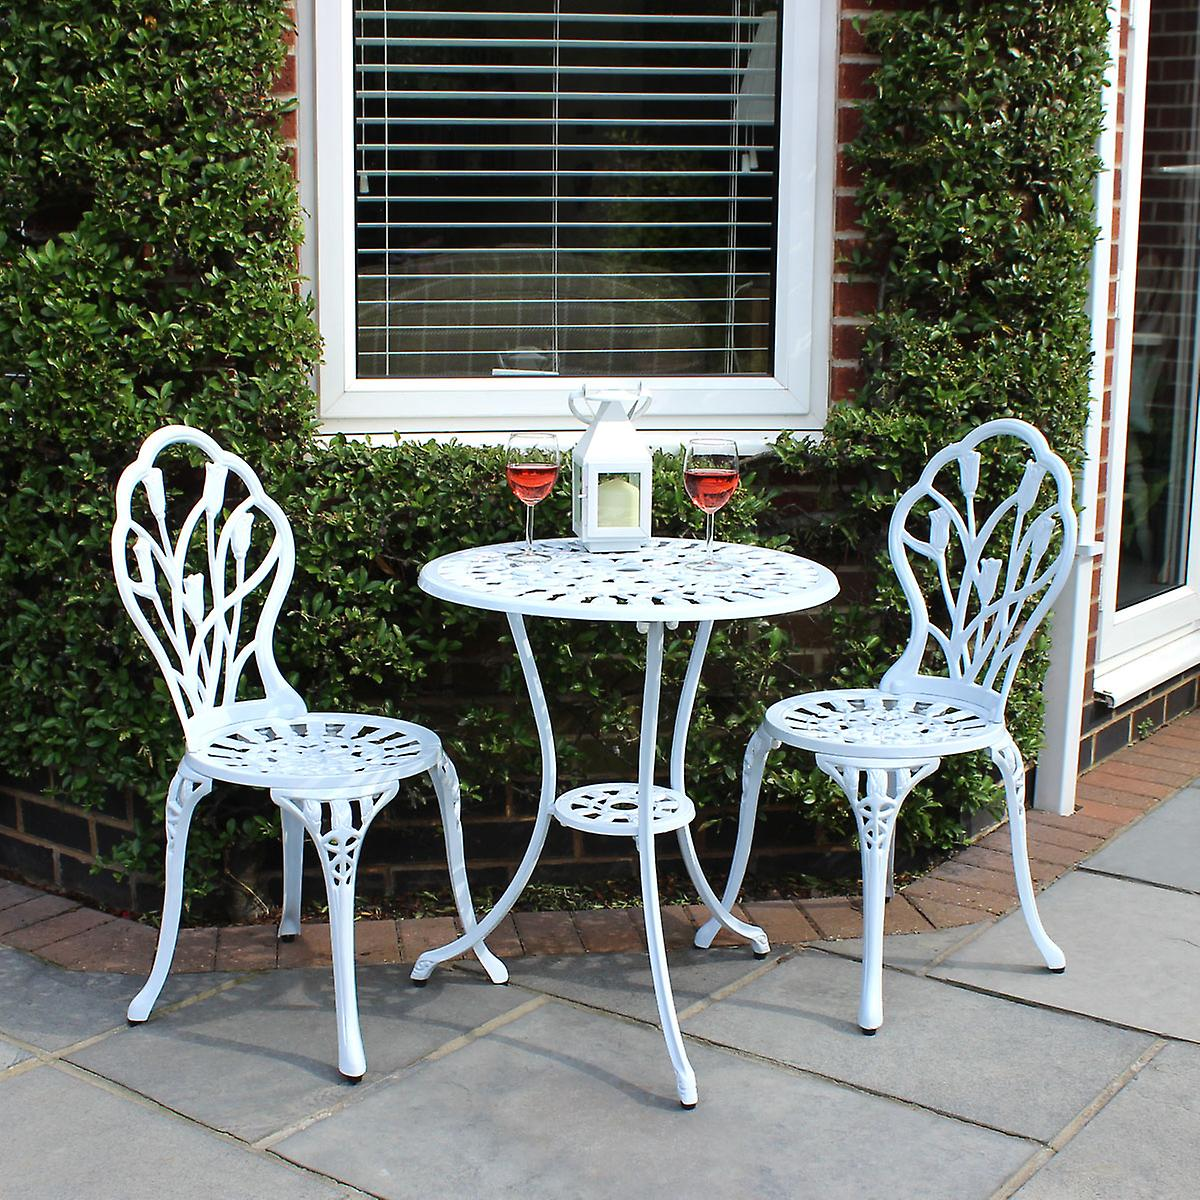 ChaisesBlanc Charles Patio Set Tulipe Jardin Bentley Pièce Cast Tableamp; Bistro 2 3 Aluminium q4A5Sc3RjL